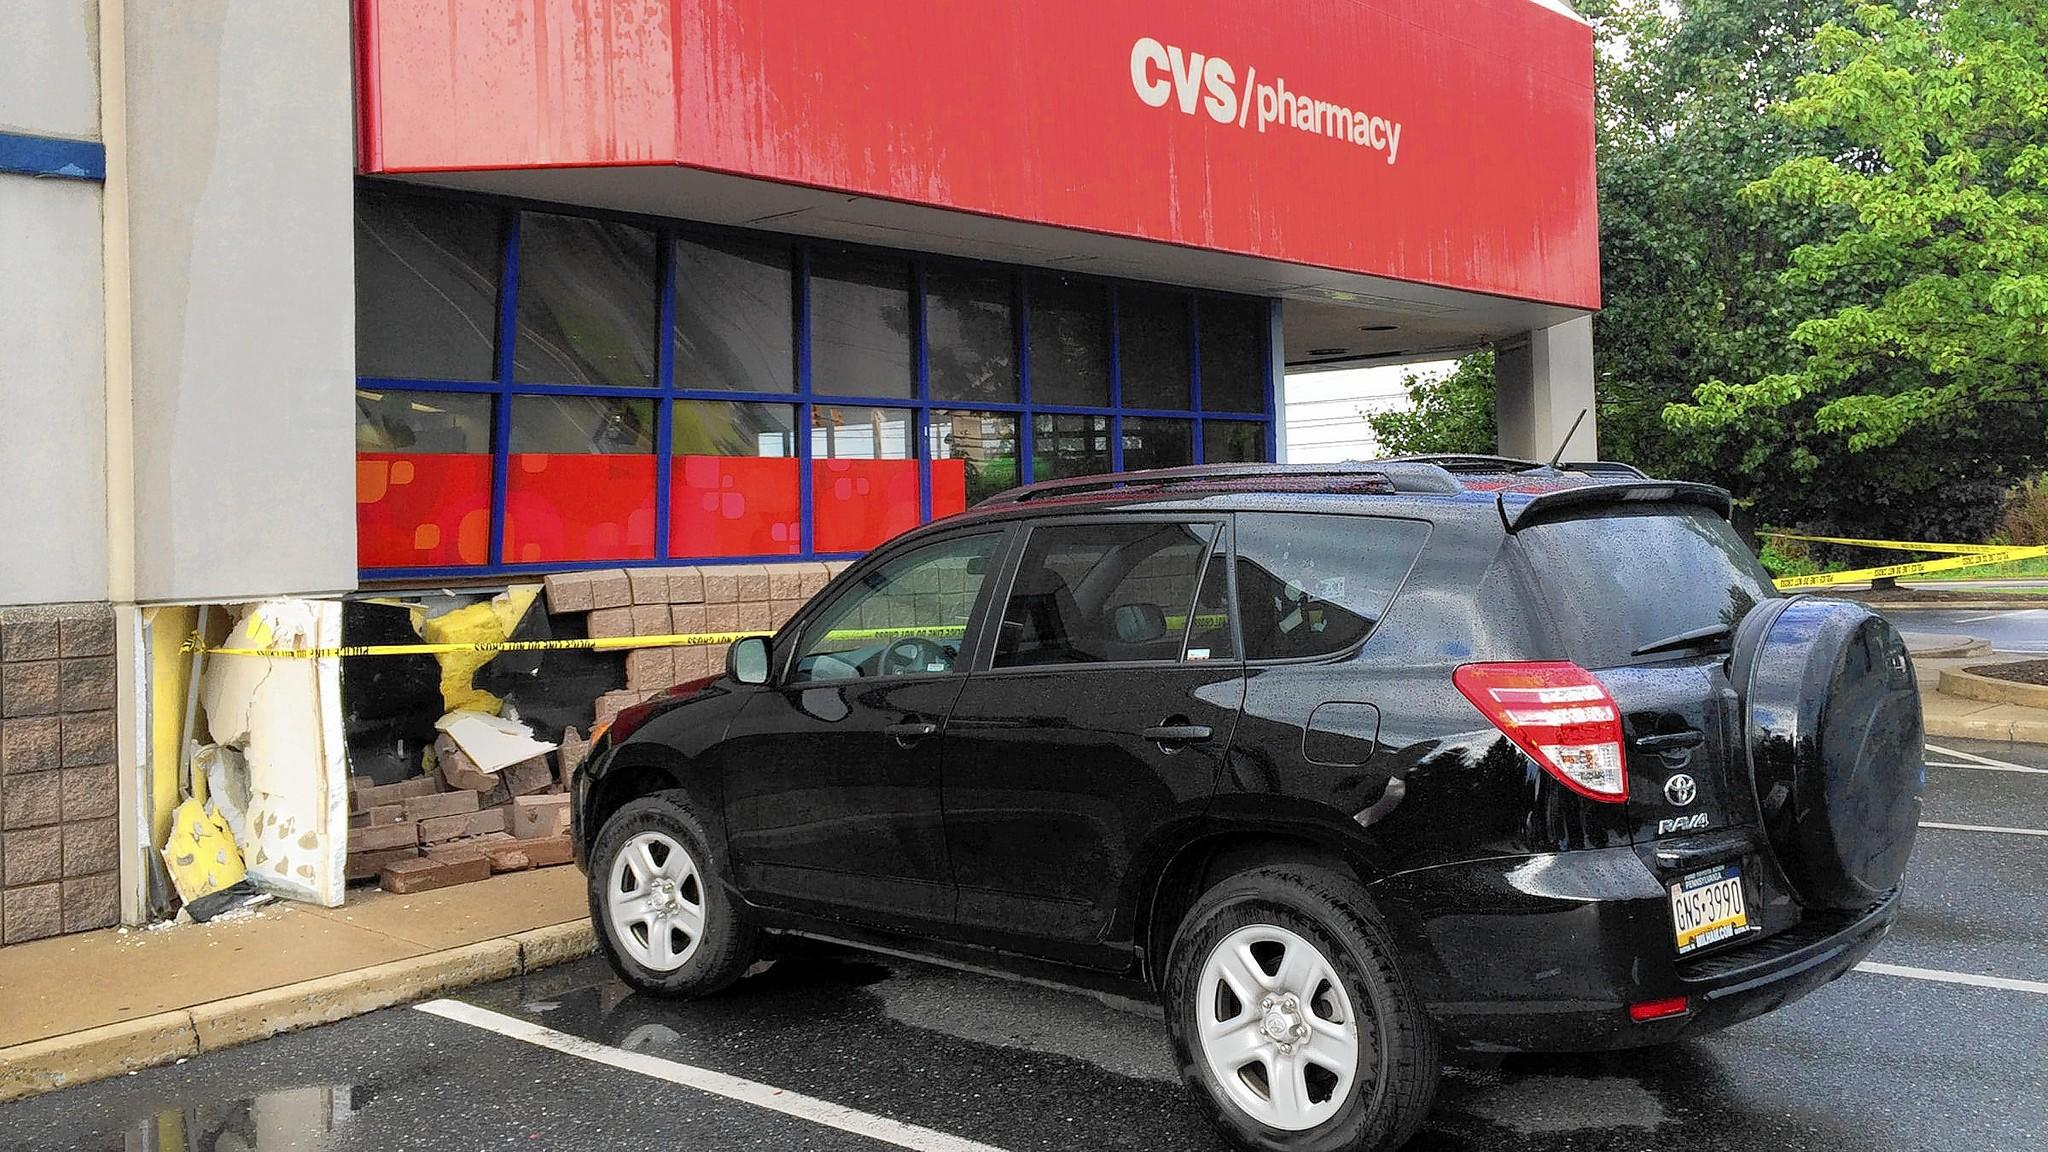 A section of wall is broken open at the CVS Pharmacy on Airport Road, Hanover Township, Northampton County, after a car crashed into the store Monday afternoon, knocking a shelf into two workers inside. The workers were treated for minor injuries.